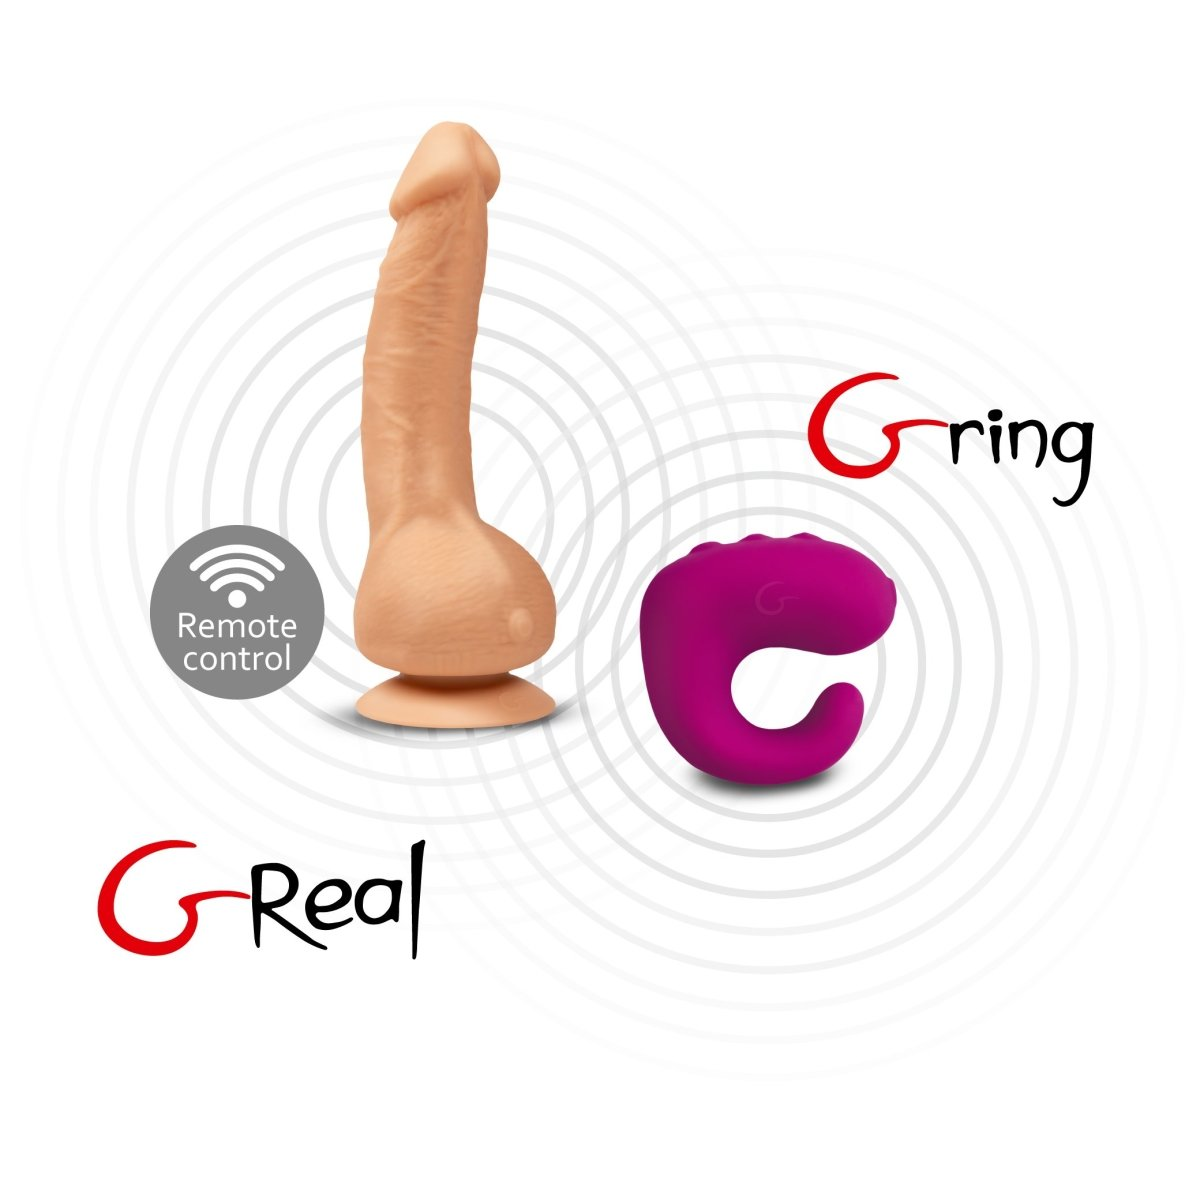 Bioskin™ Greal - Flesh - Buy Sex Toys Gvibe.com